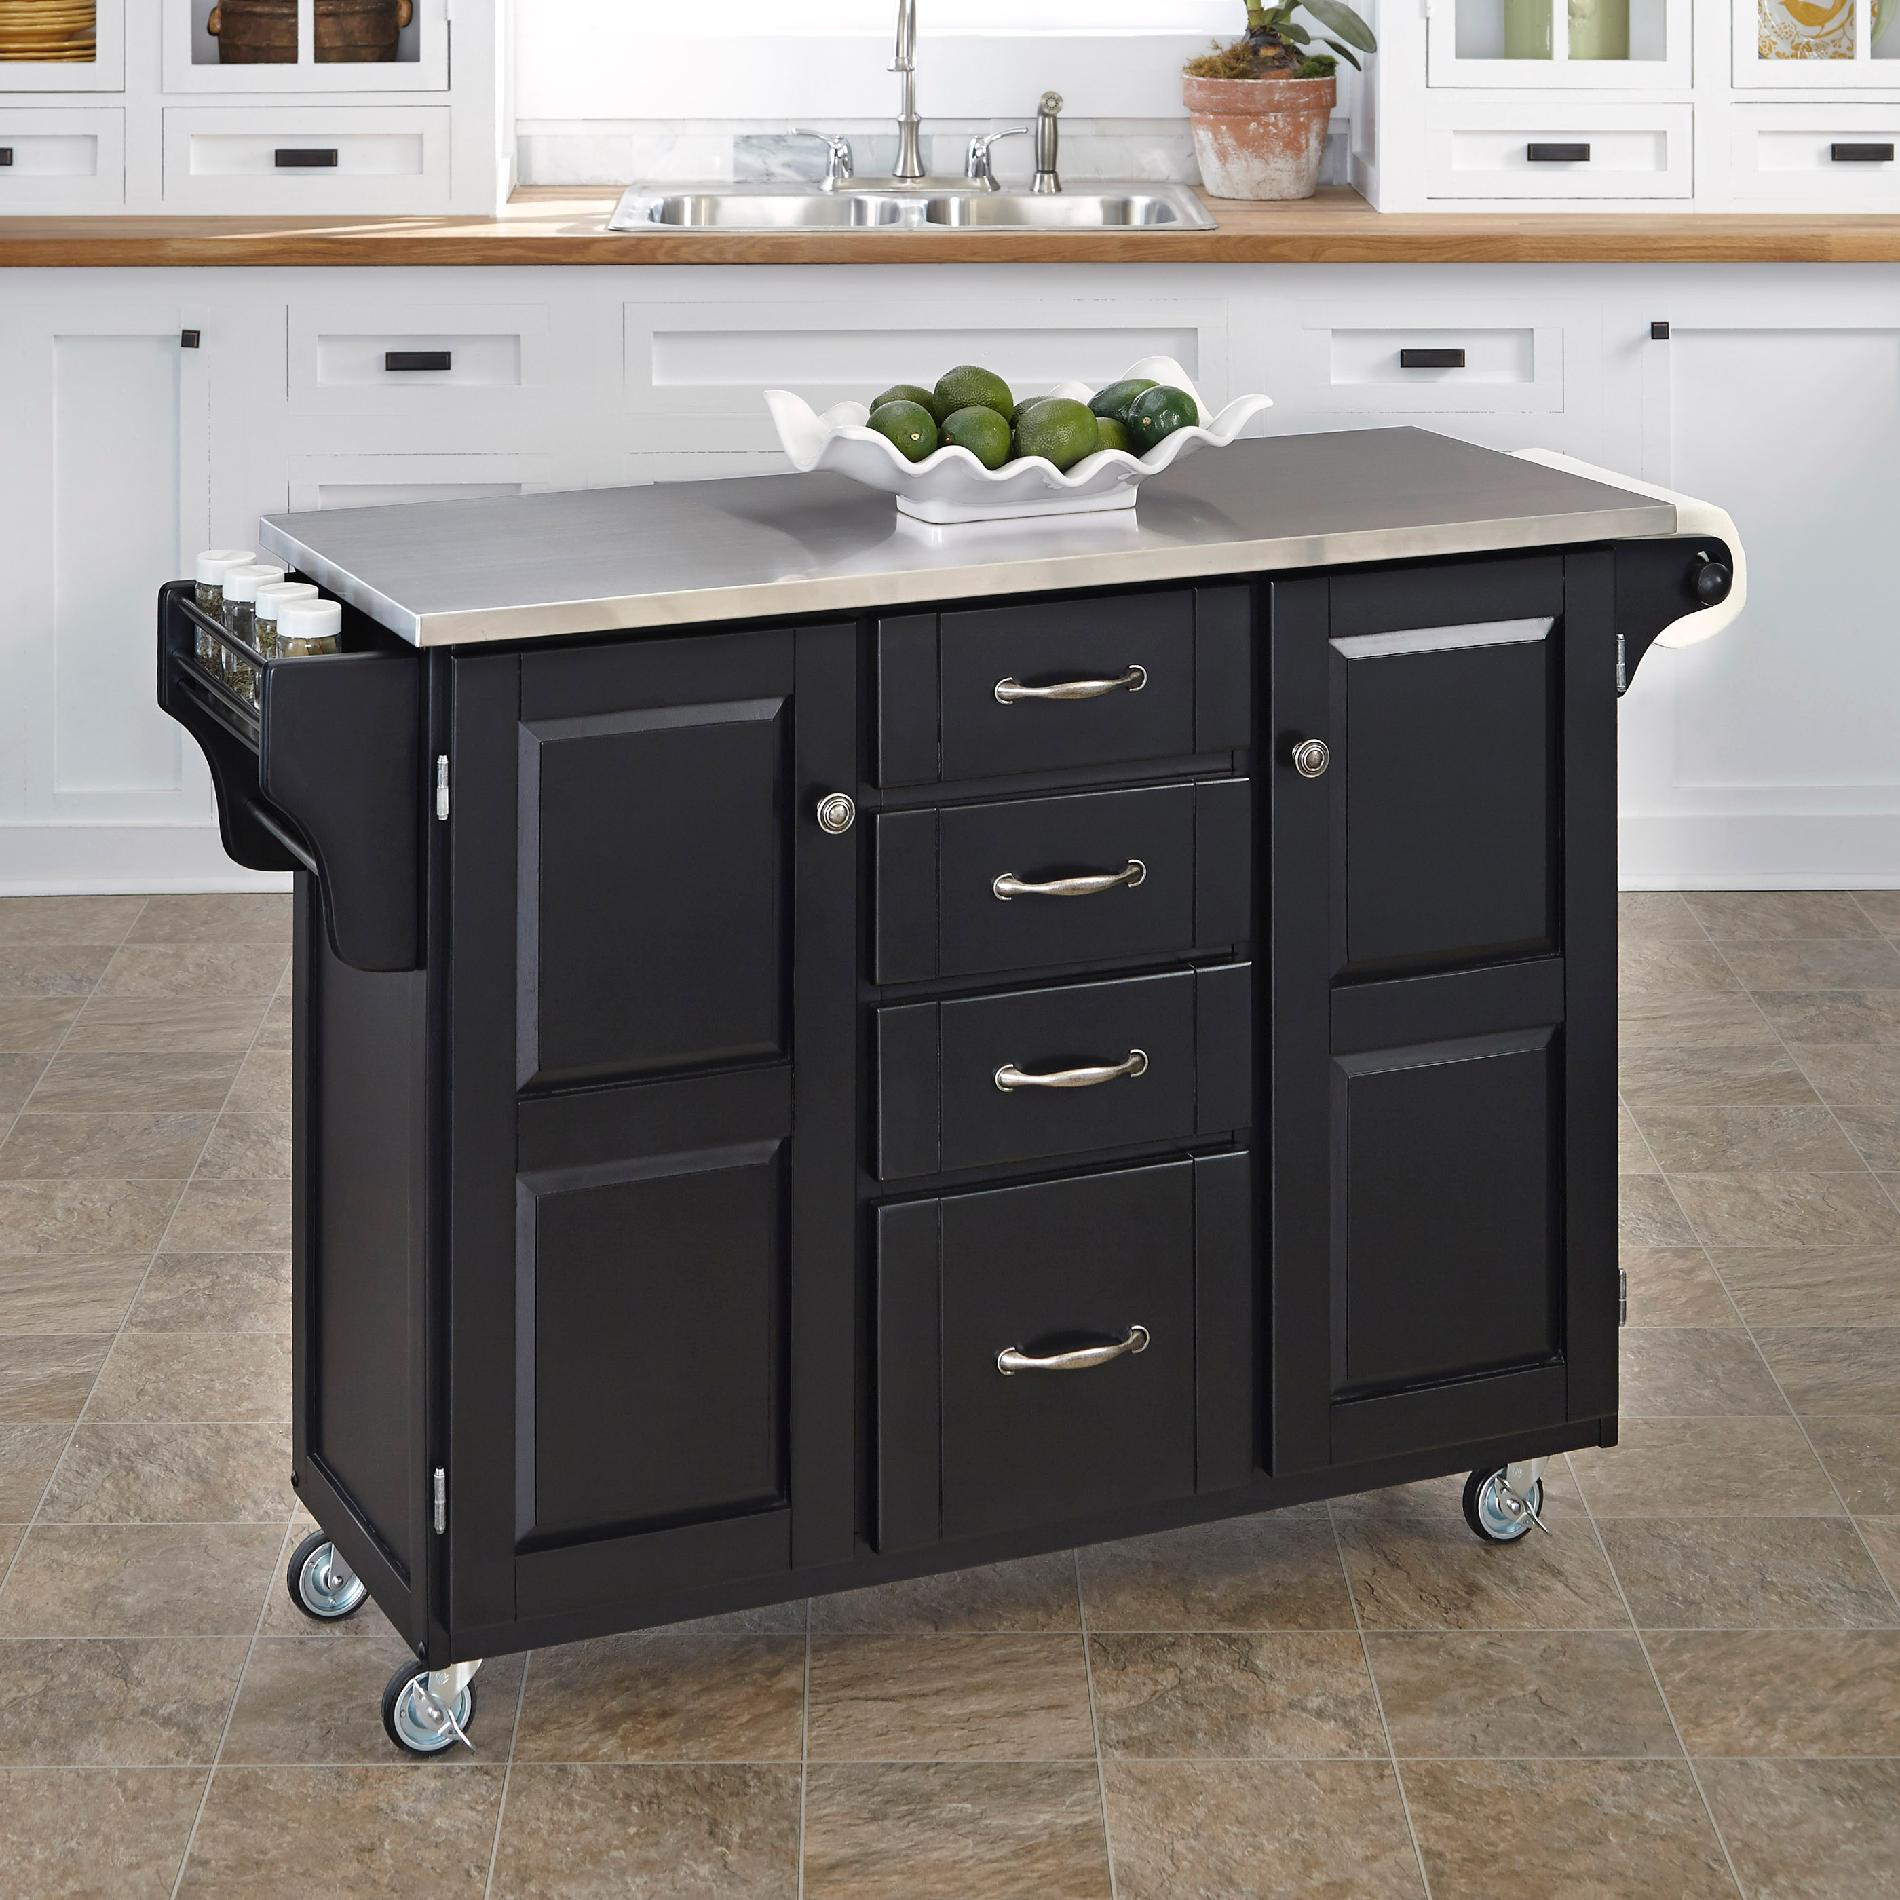 Home Styles Create-A-Cart Large Cart - Black Finish with ...